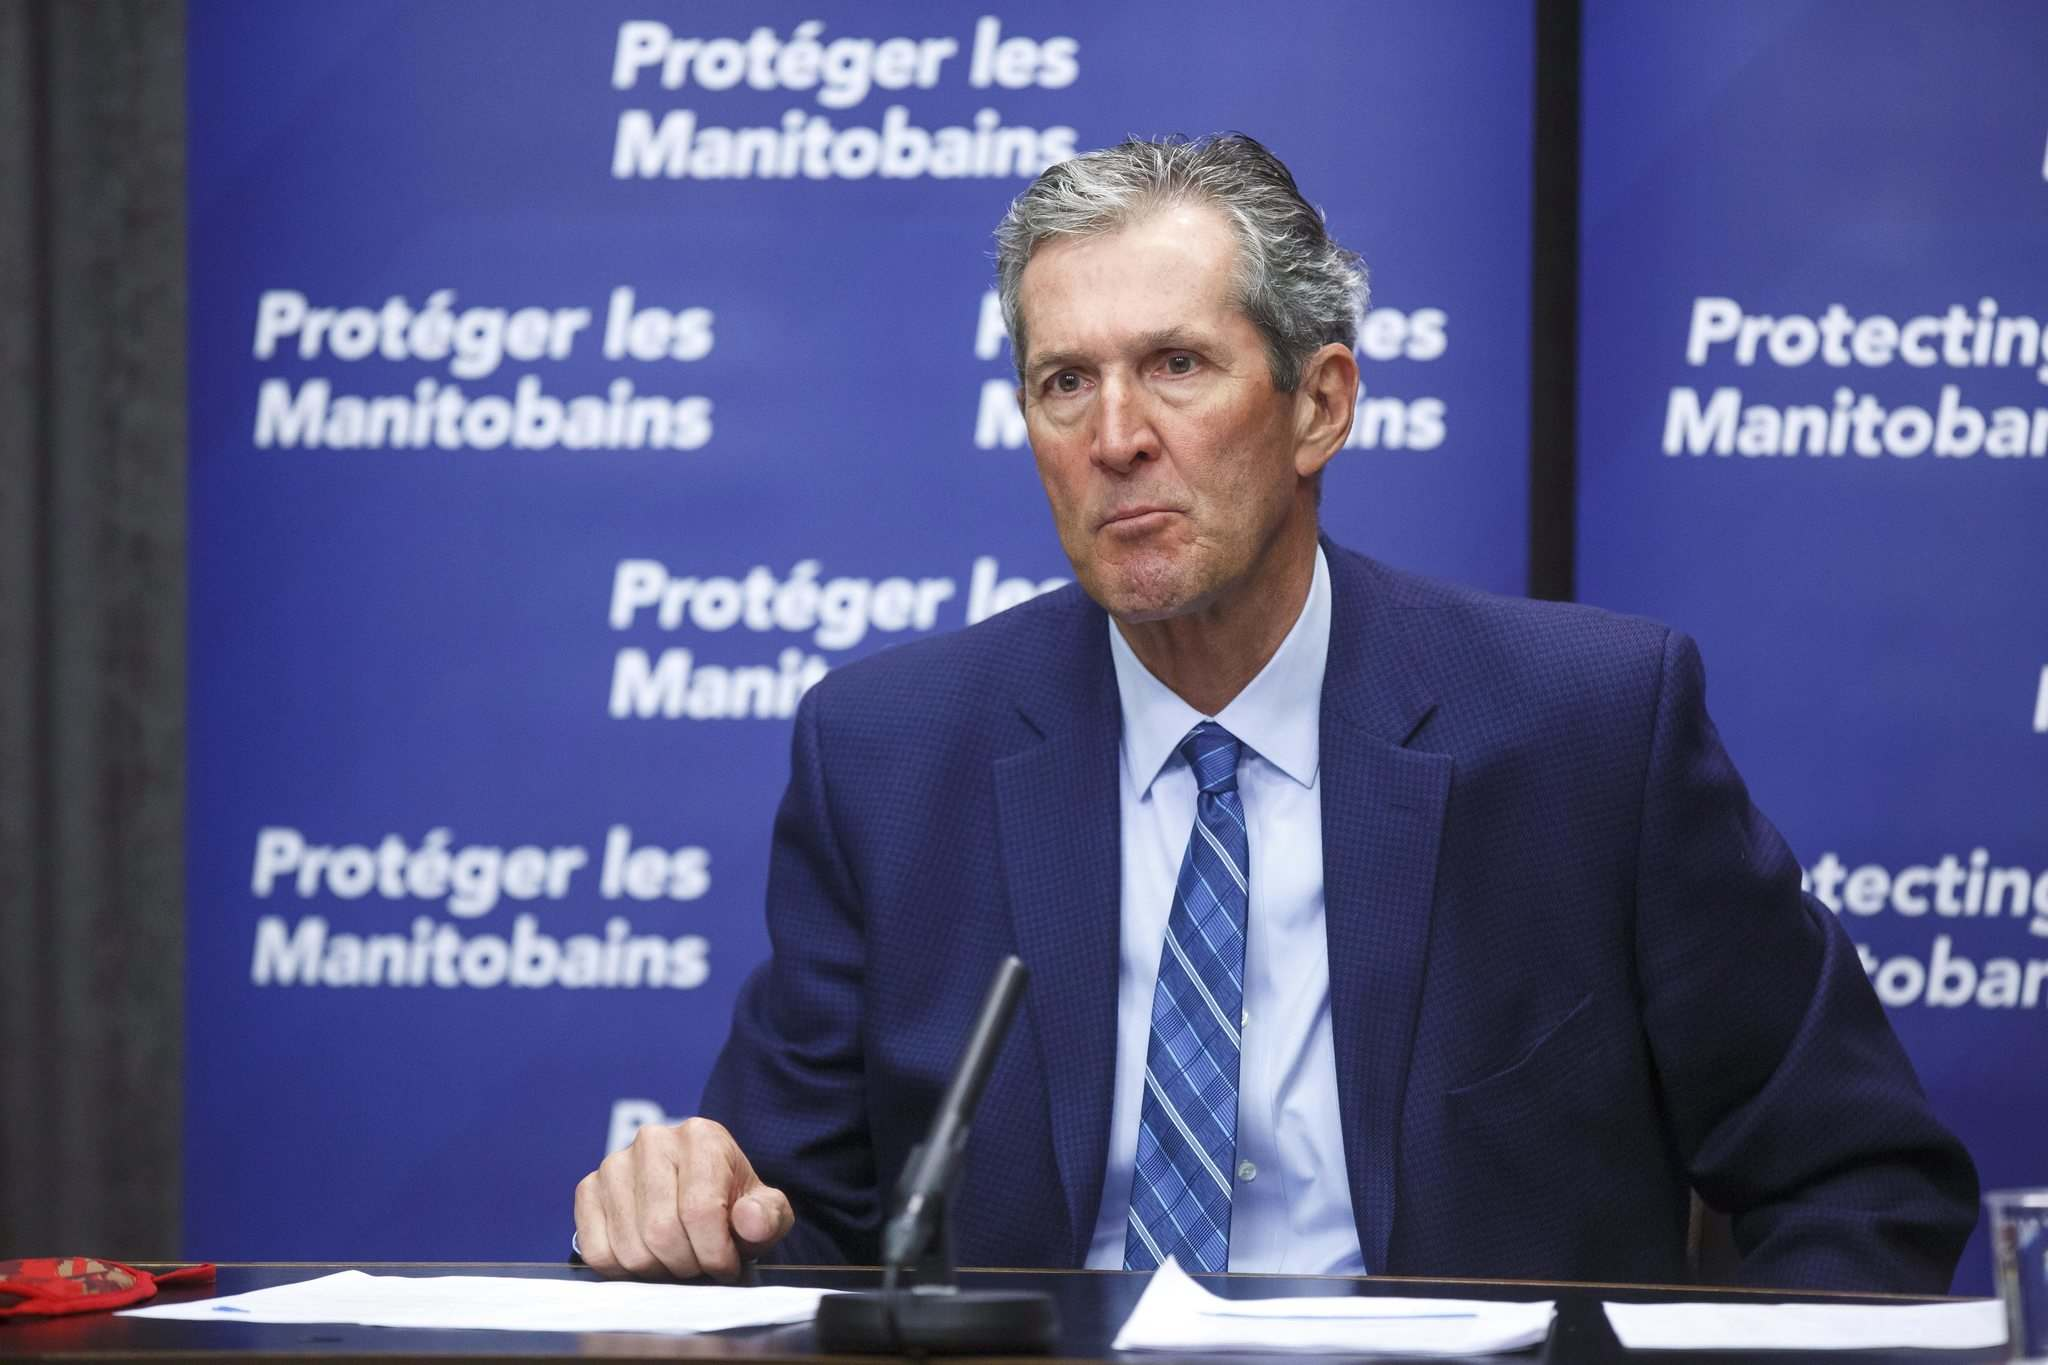 Brian Pallister's government gambled that immunizing enough people over the age of 70 would dampen hospitalizations, even as new variants spread.